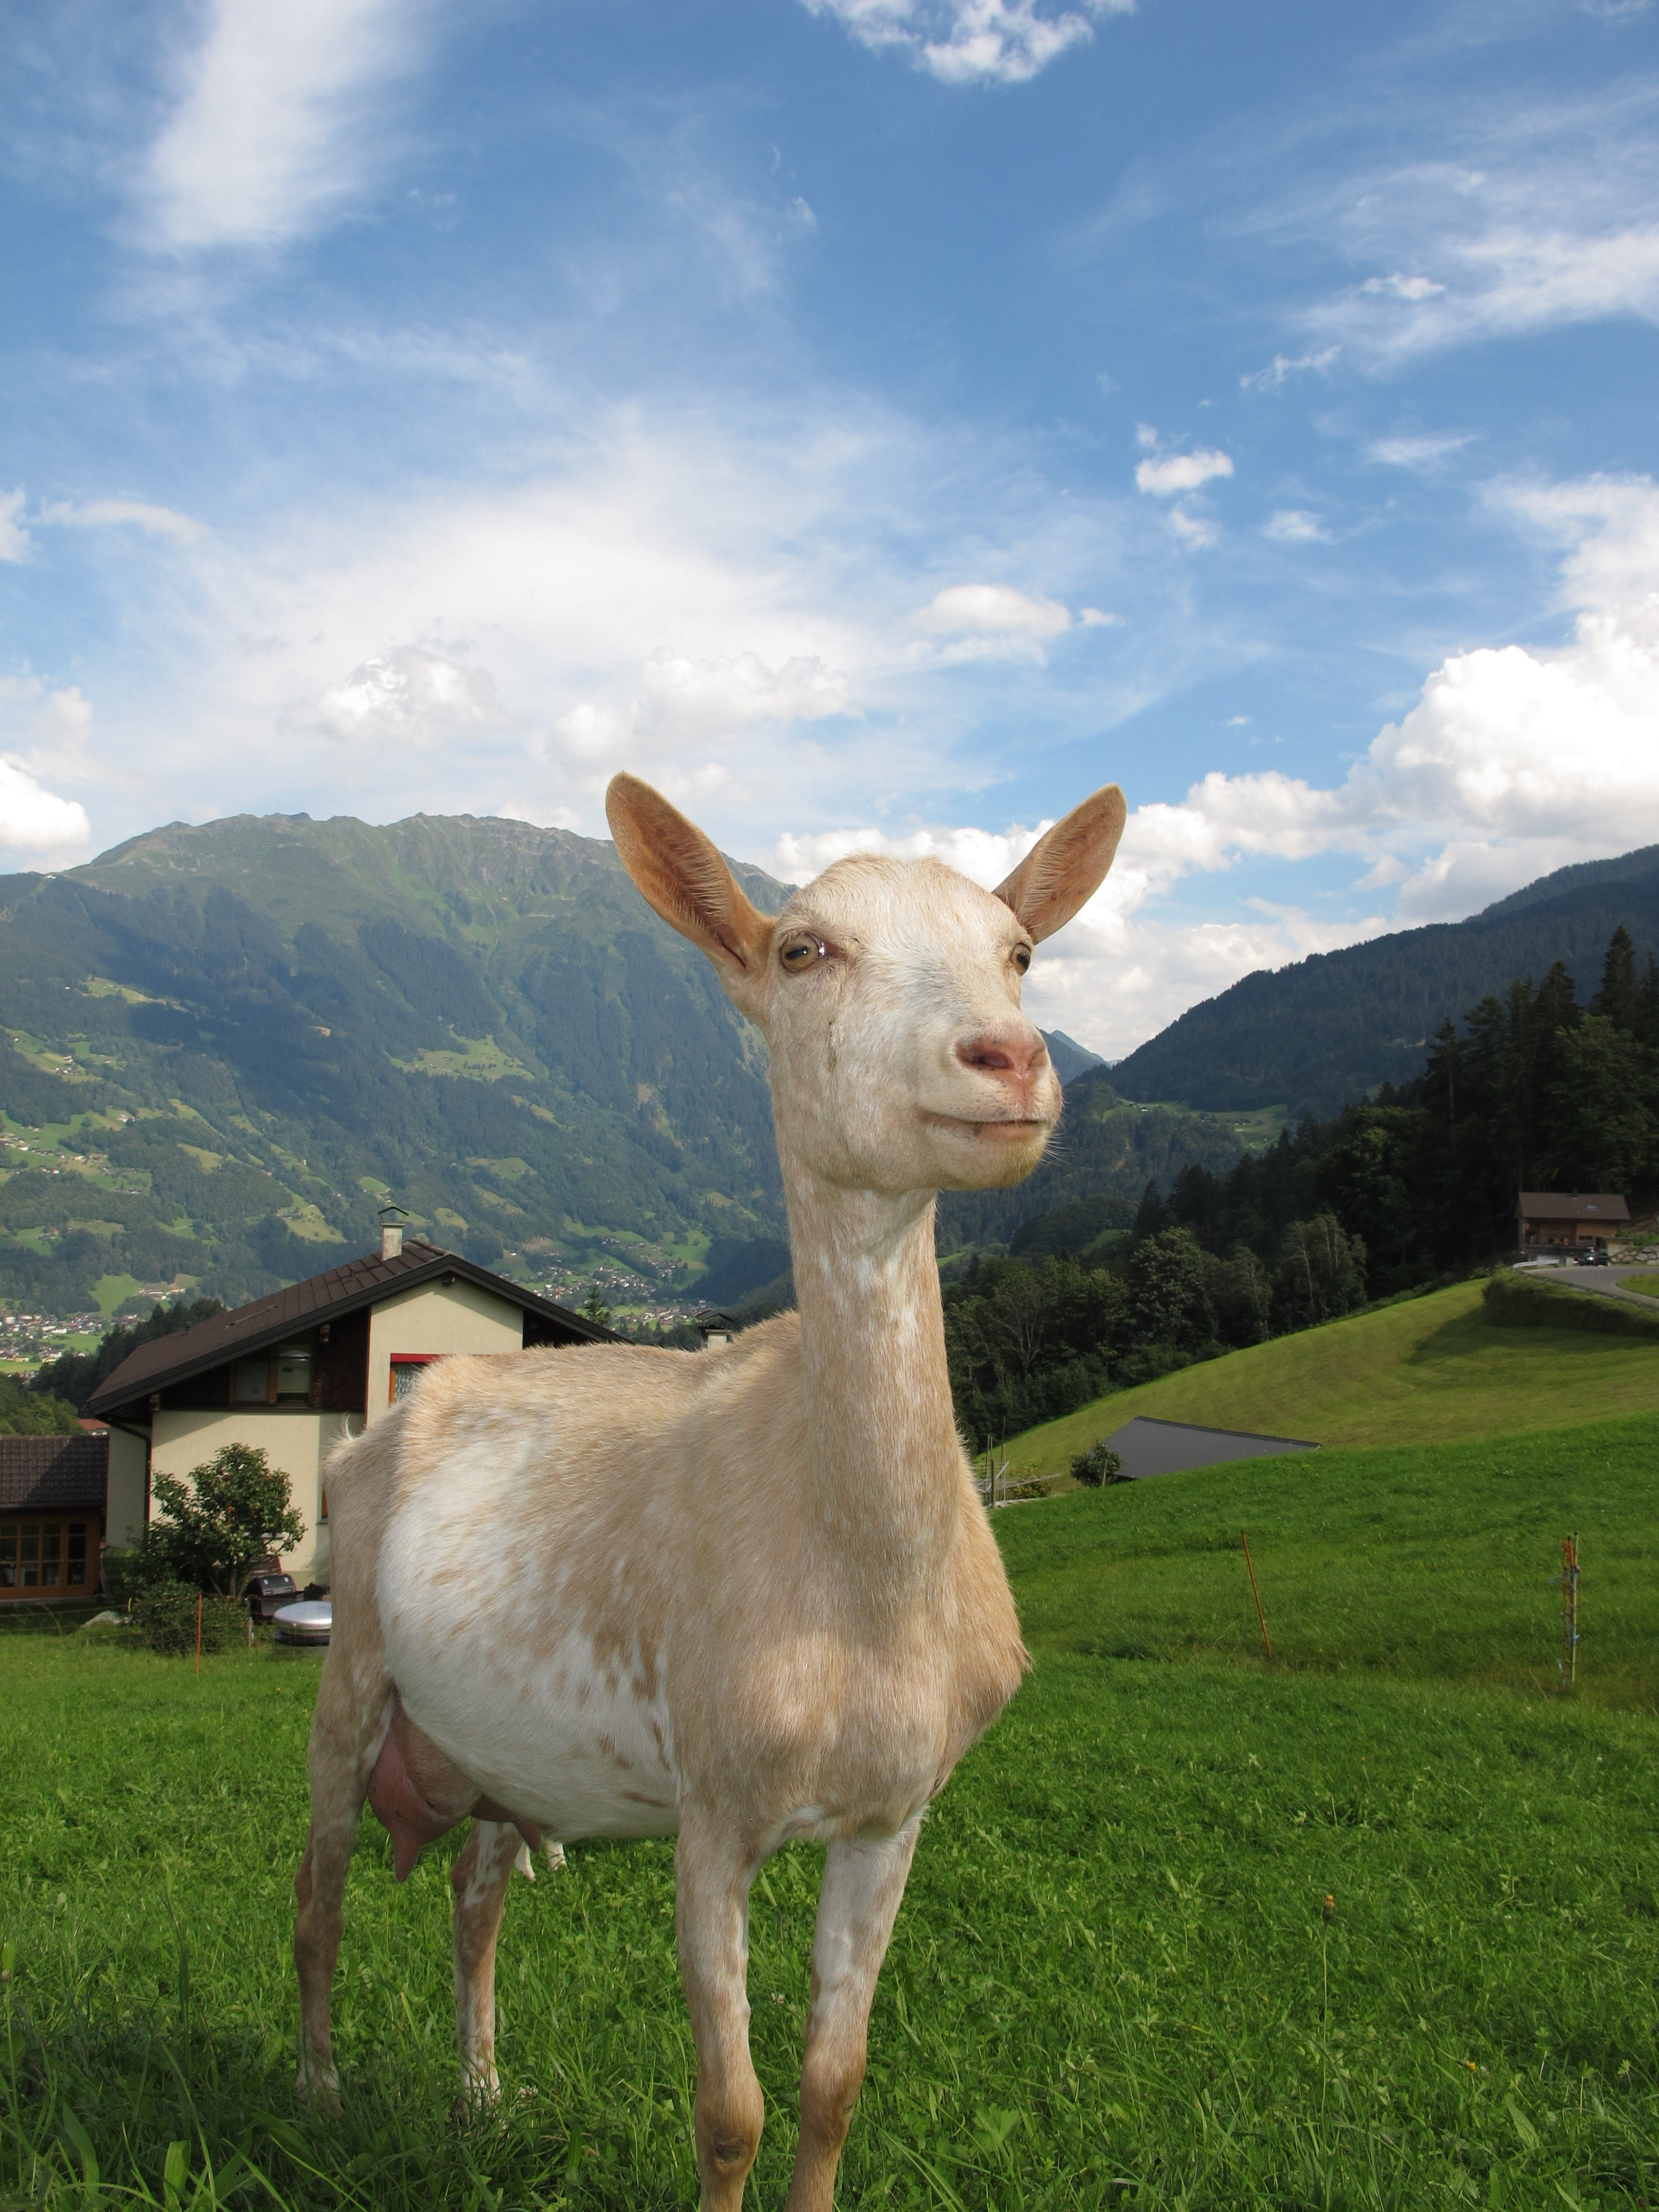 How To Download Live Wallpapers For Iphone White Goat Eating Grass During Daytime 183 Free Stock Photo